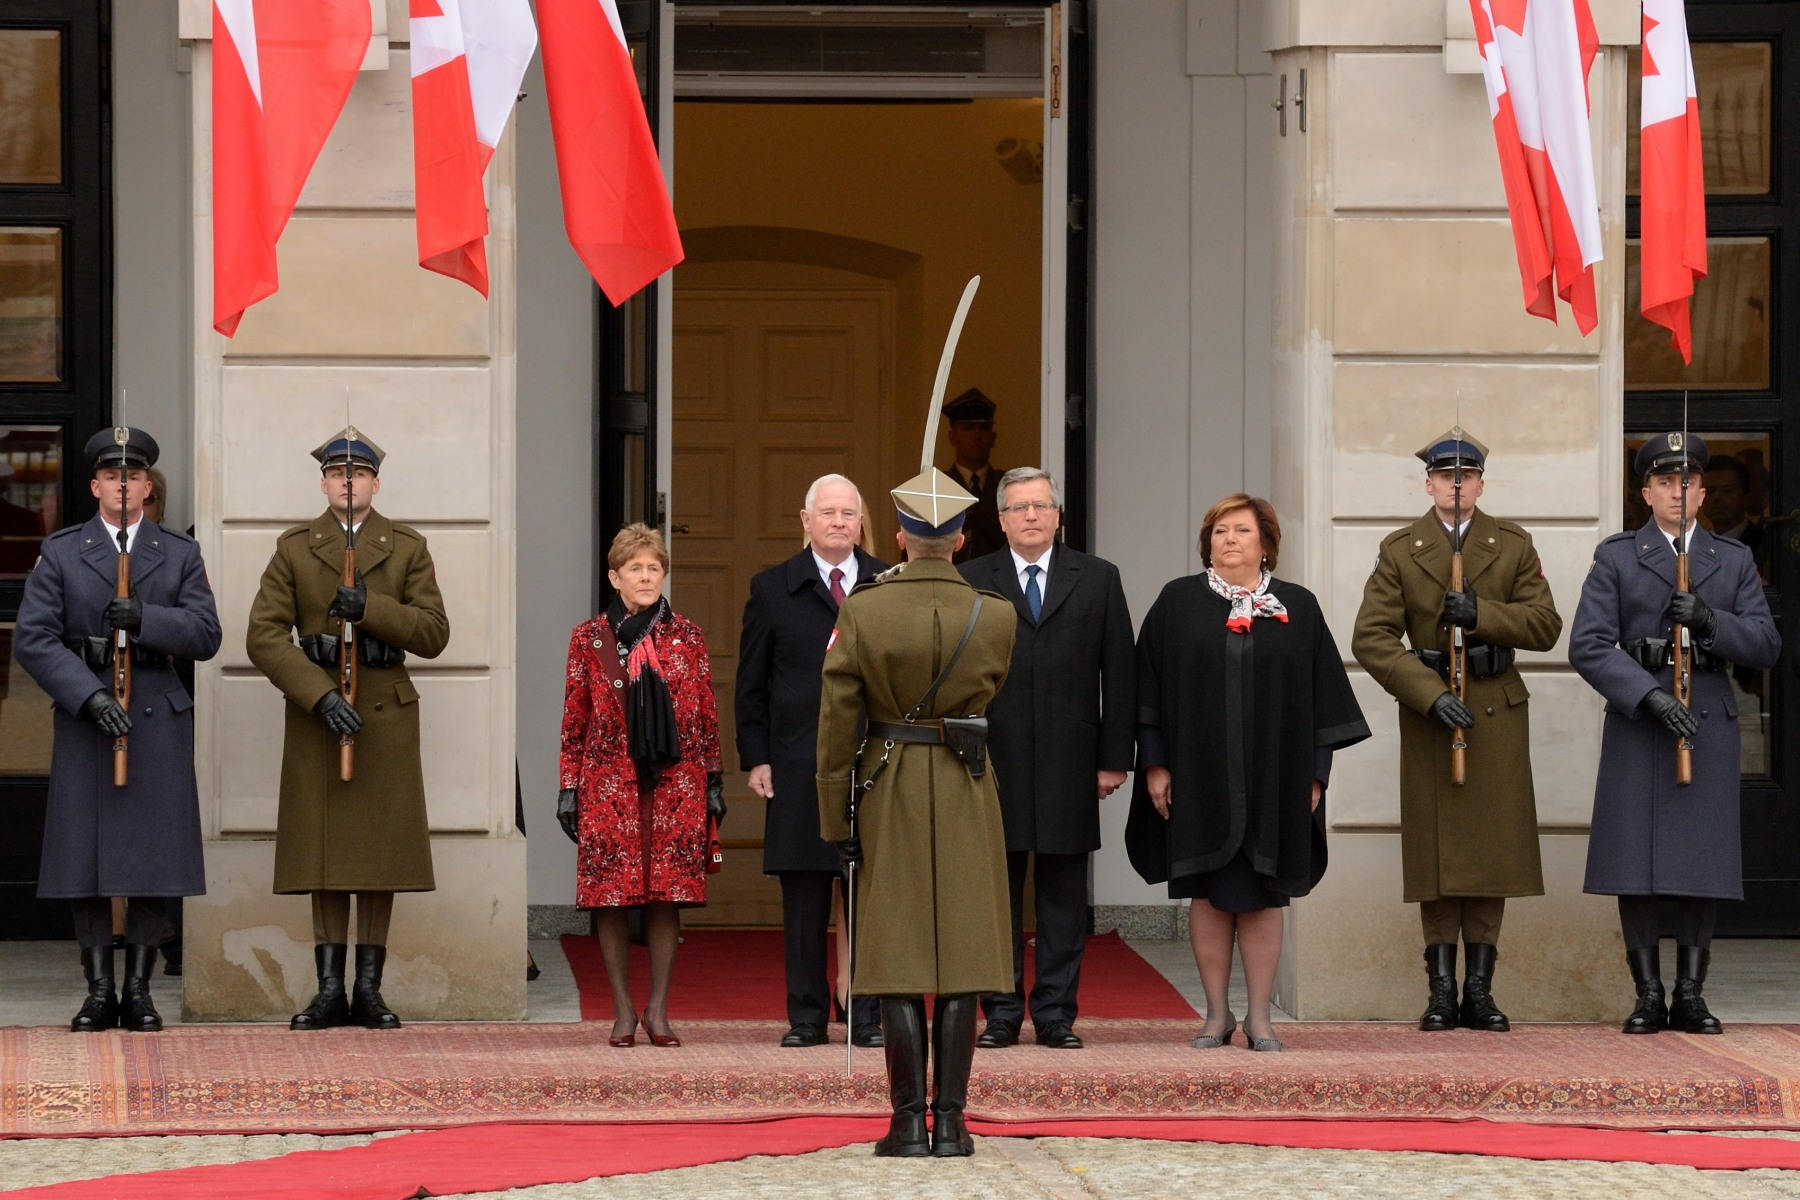 This is the second visit to Poland conducted by a governor general. The Right Honourable Adrienne Clarkson visited the country in 2005.